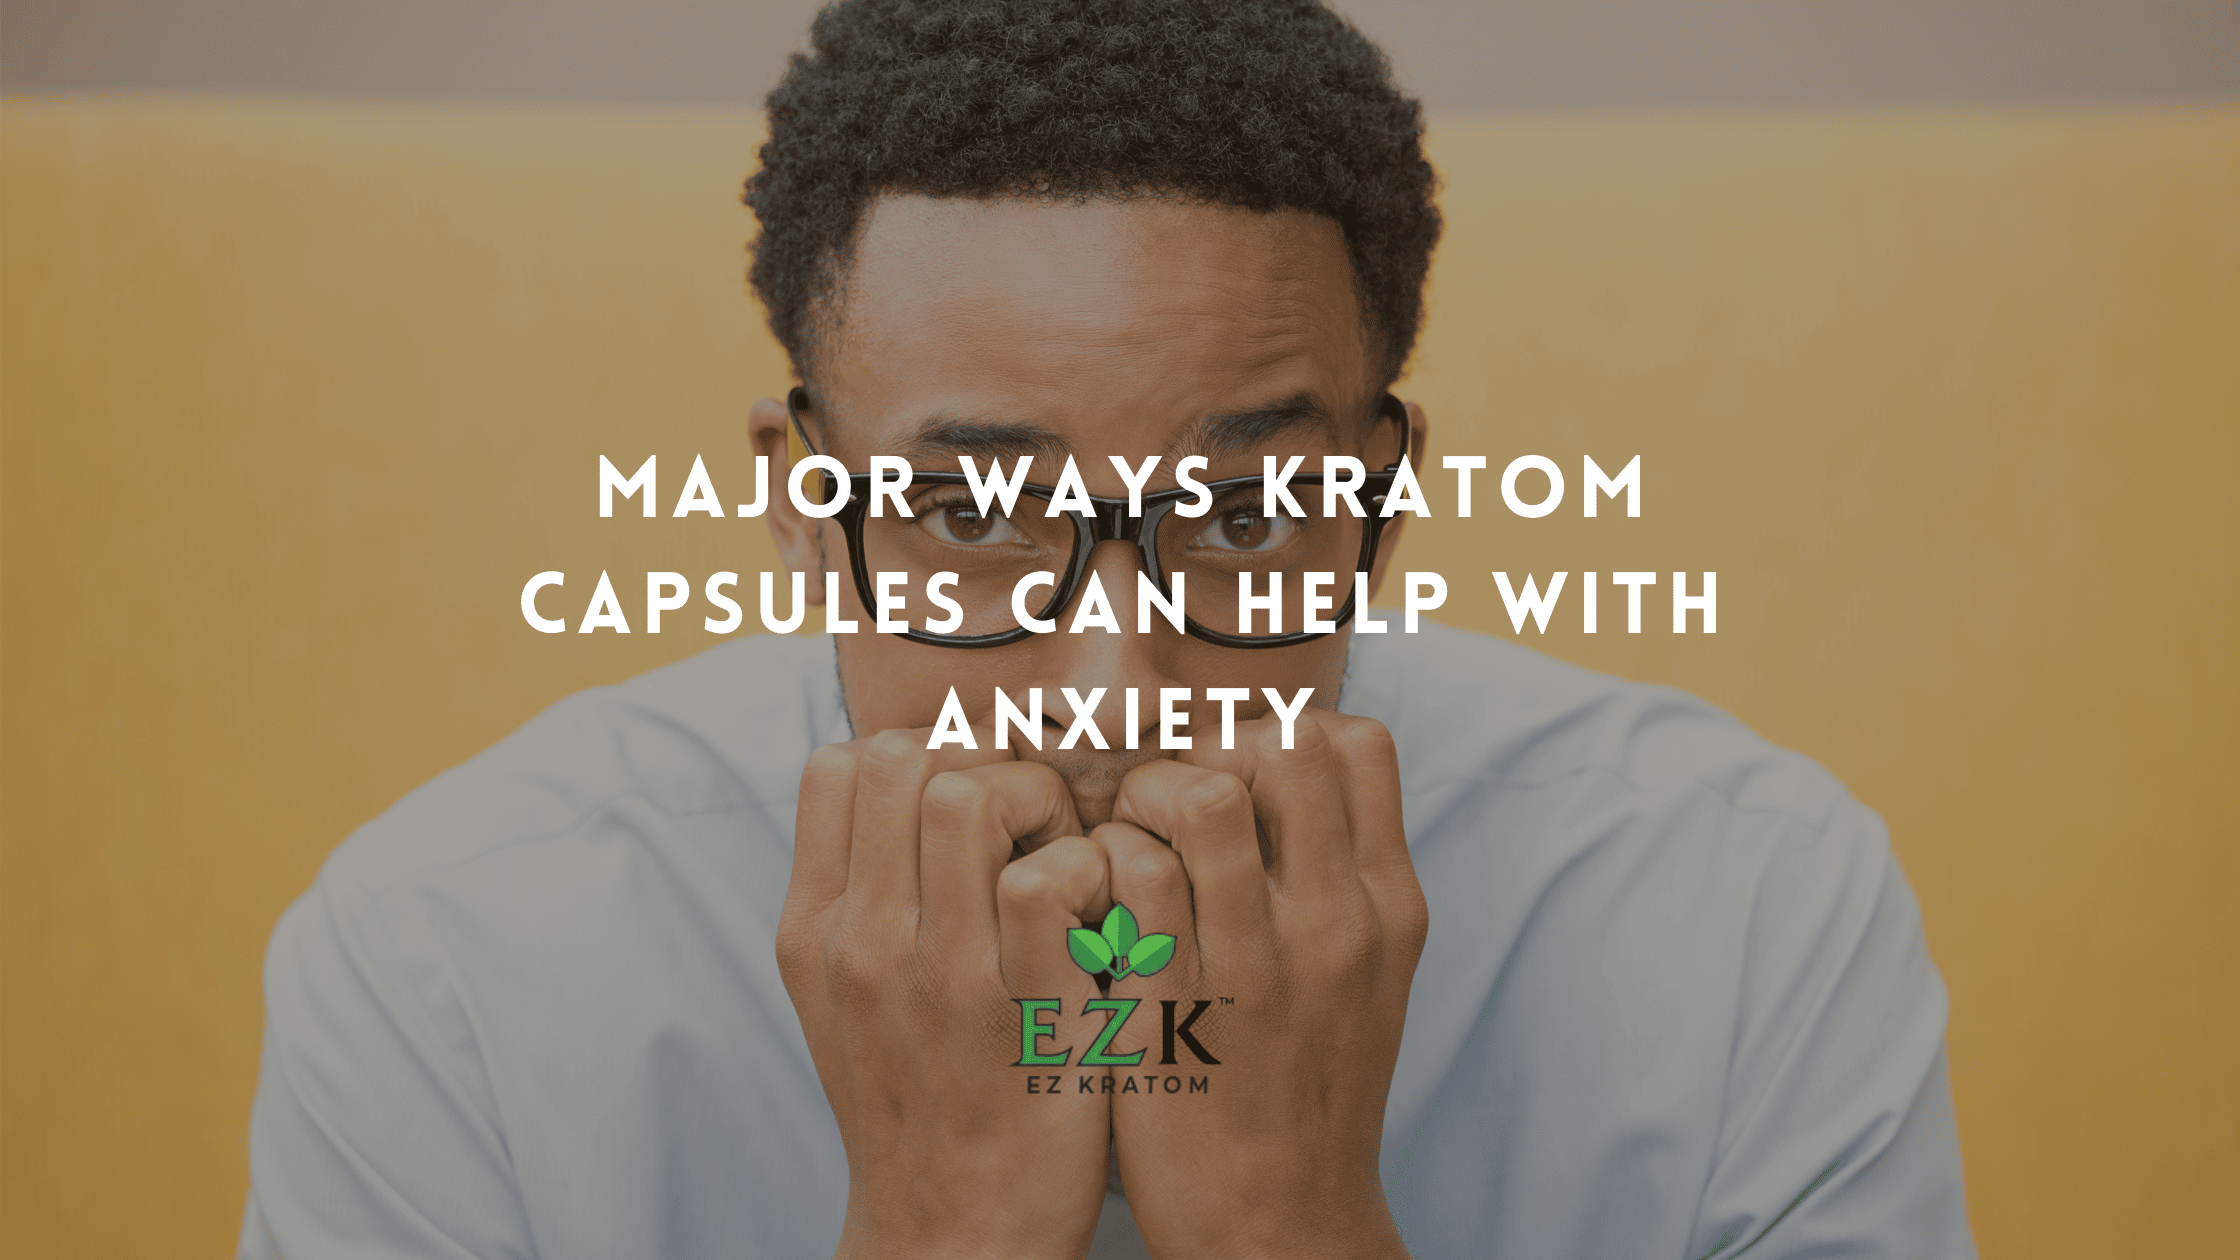 Major Ways Kratom Capsules Can Help With Anxiety